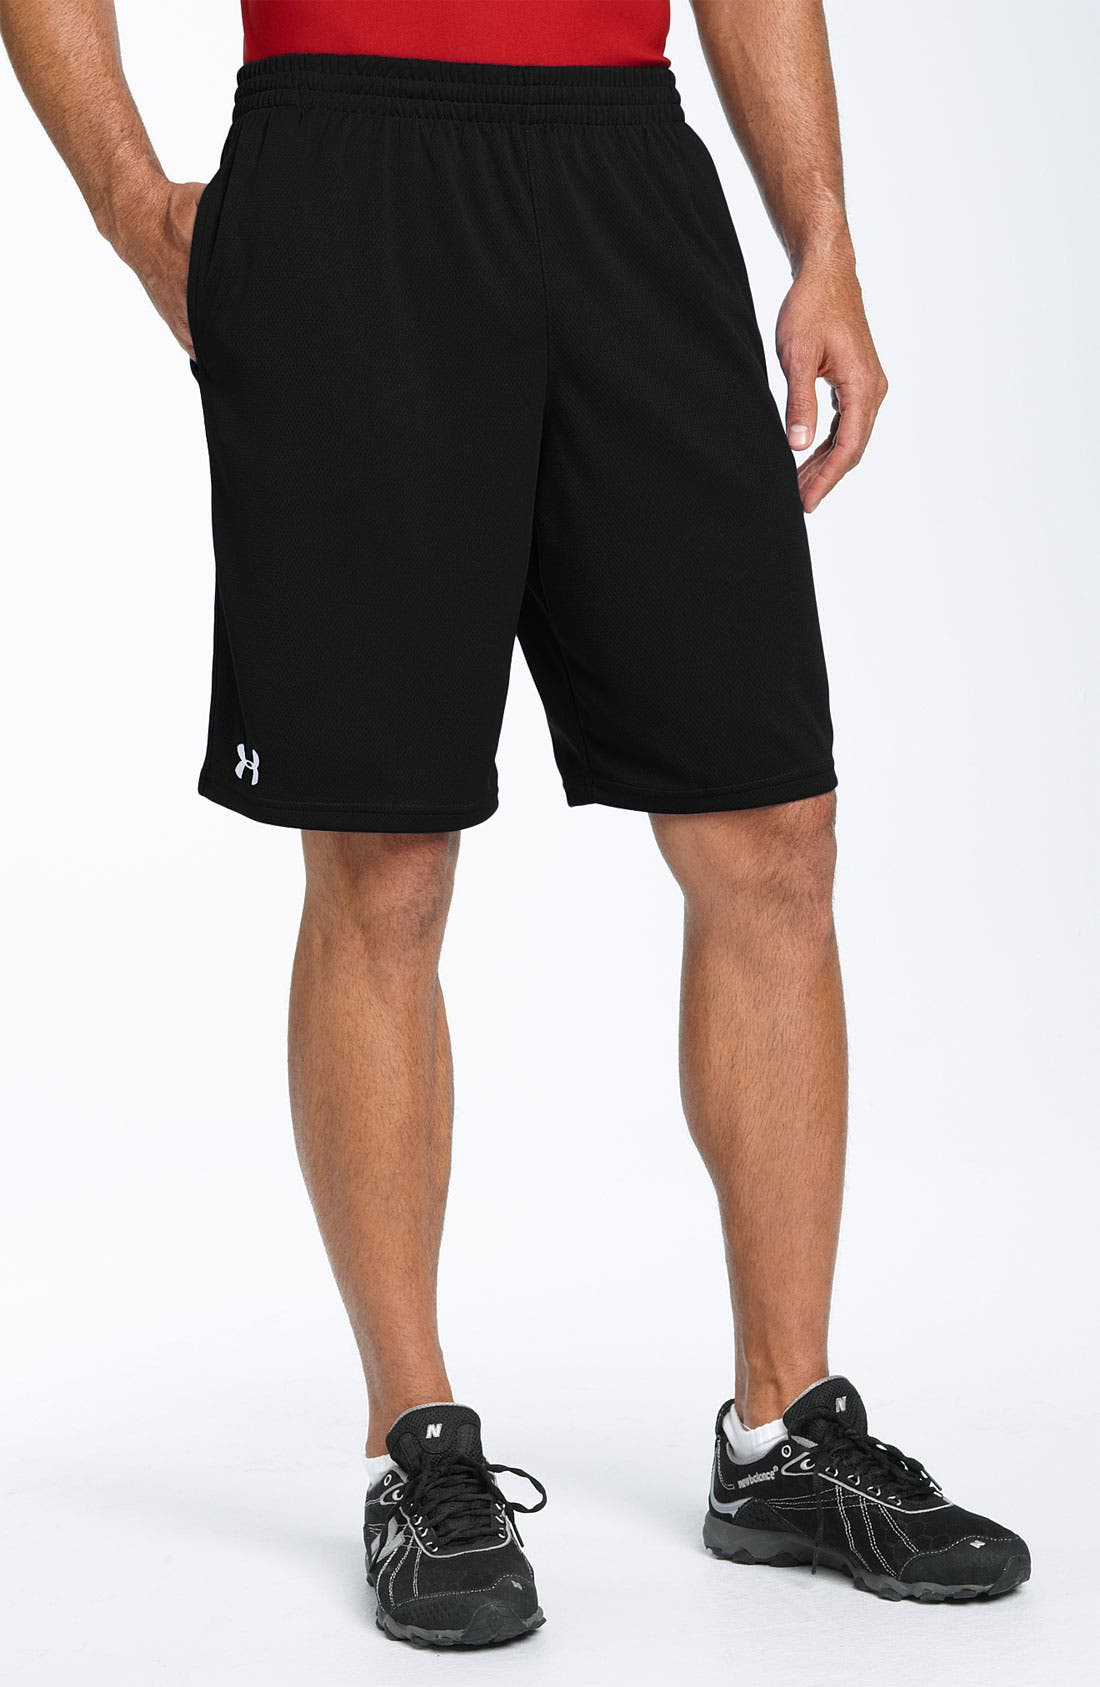 Main Image - Under Armour 'Flex' HeatGear® Mesh Shorts